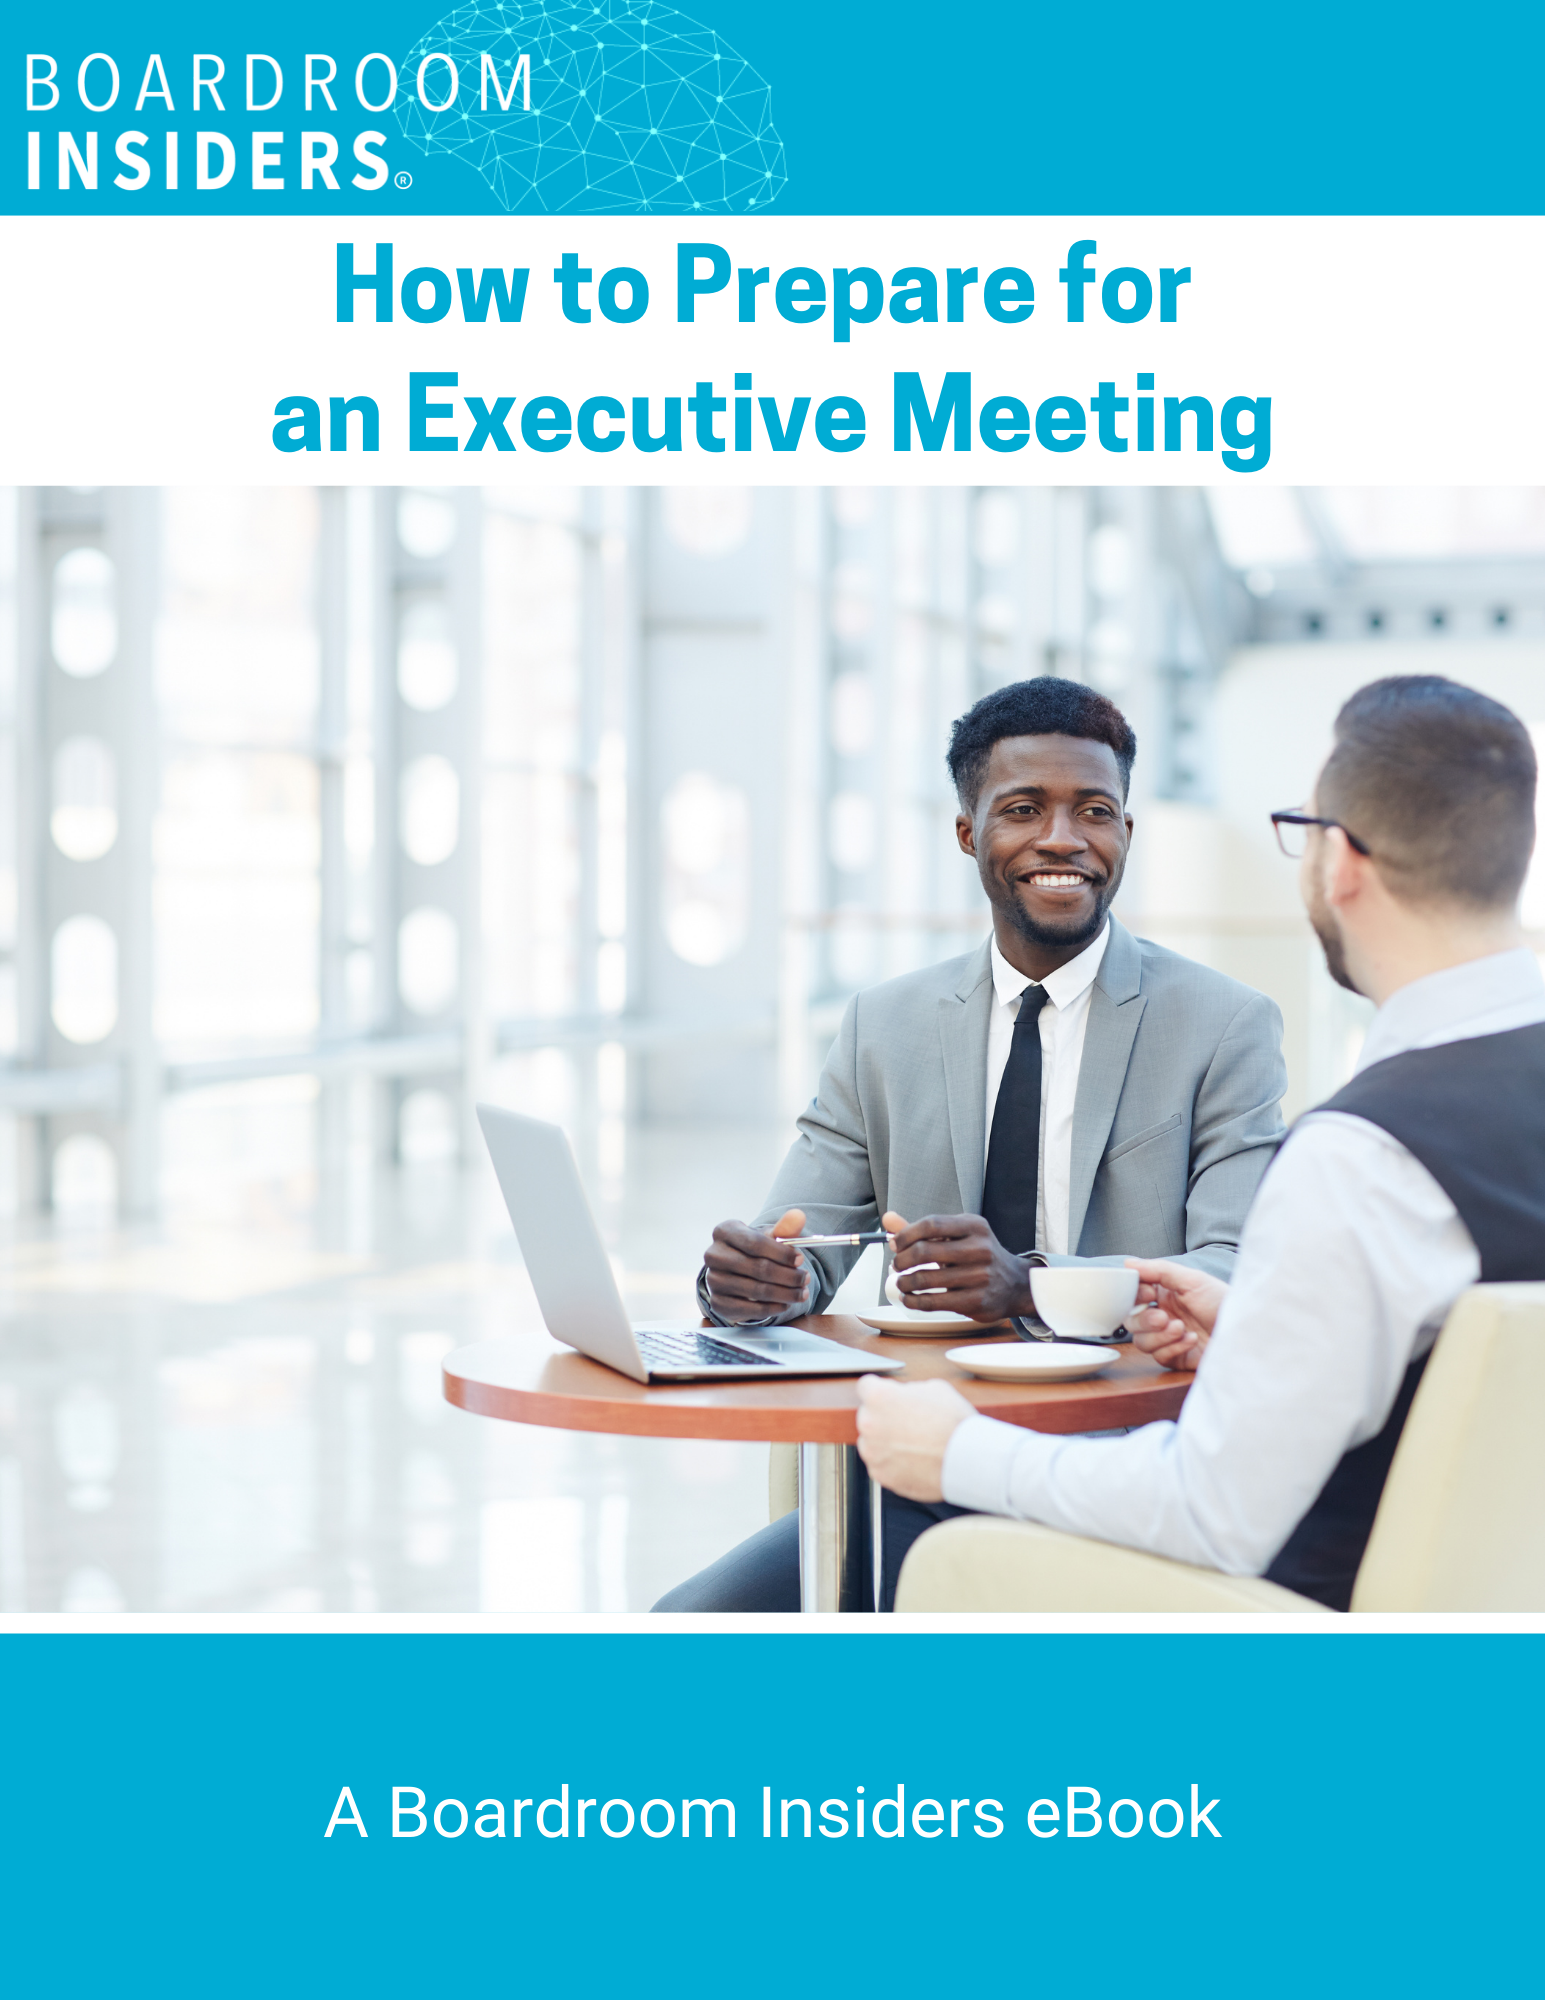 How to Prepare for an Executive Meeting-1